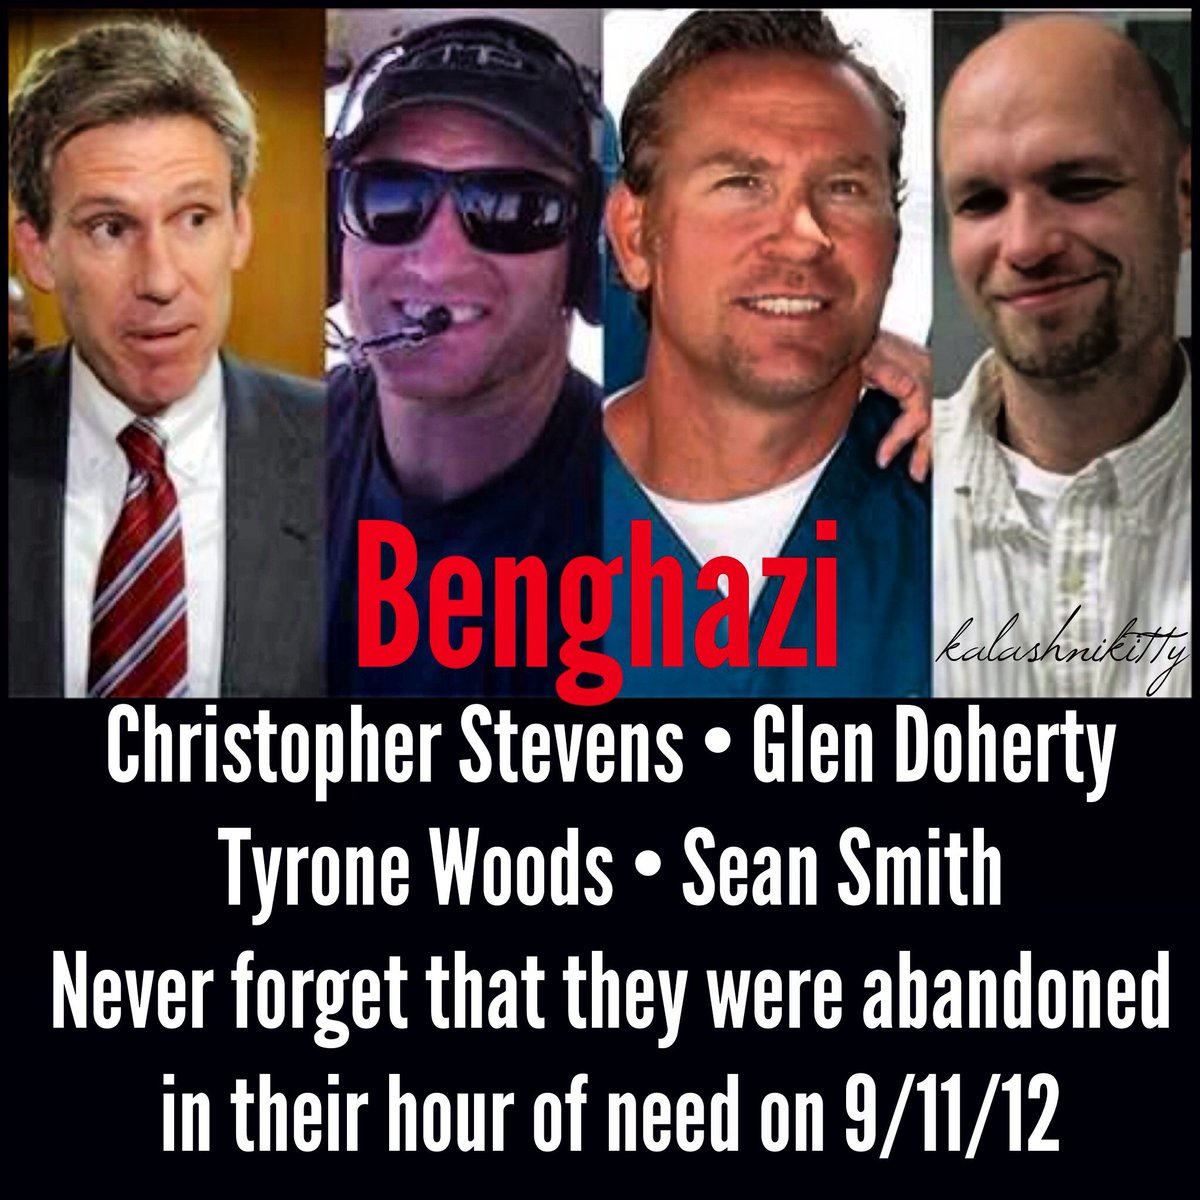 Security Contractors involved in Benghazi silenced by Hillary Clinton